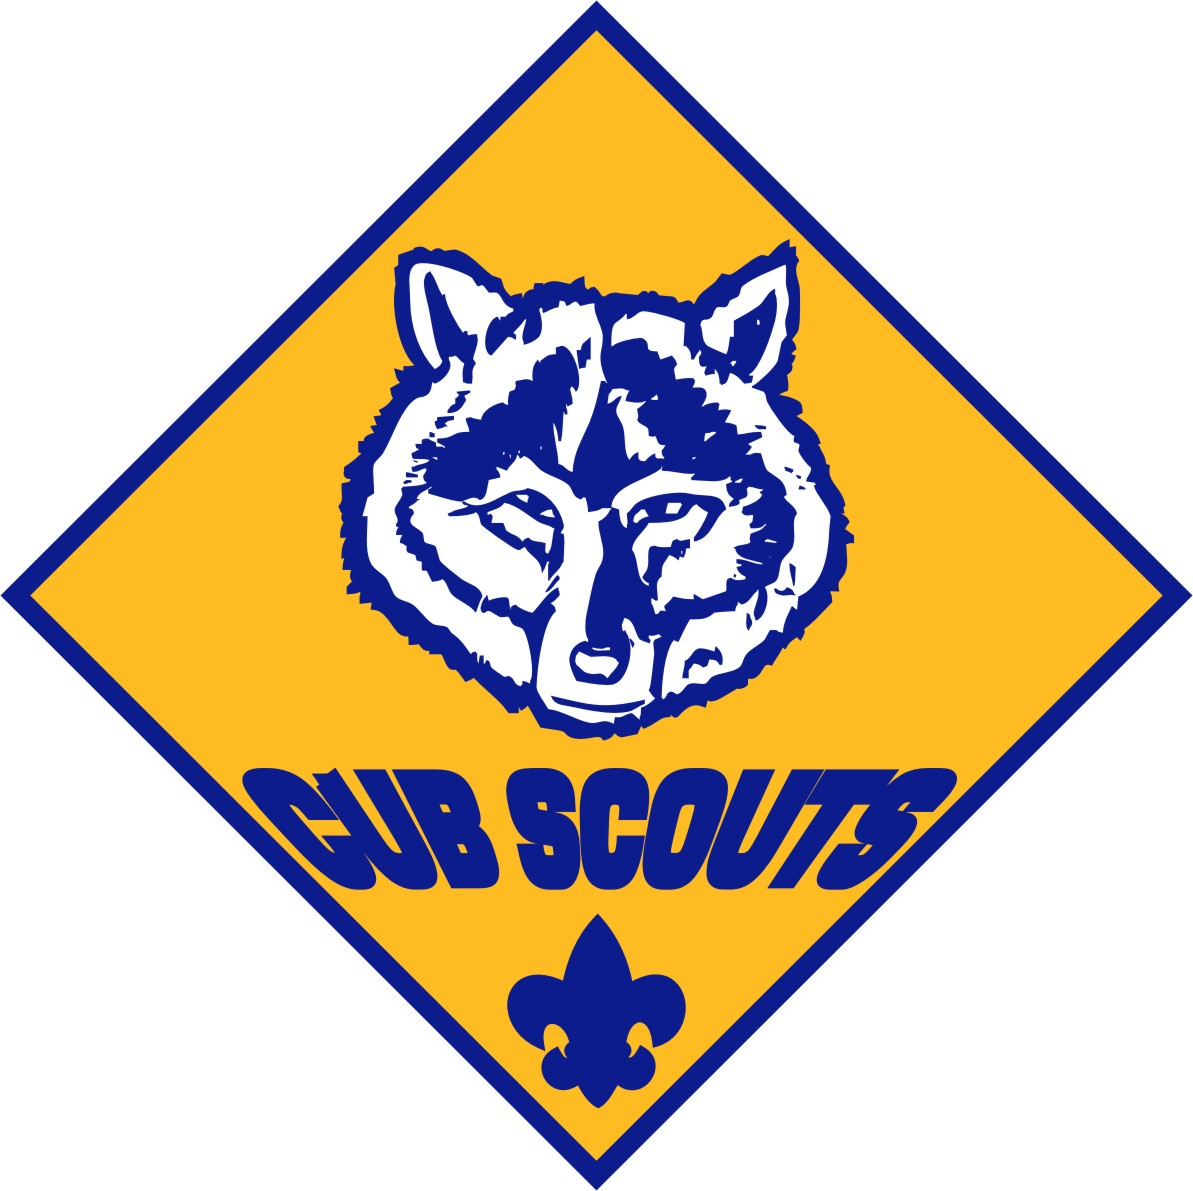 cub scout pack 170 ice cream social may 17 the newtown bee rh newtownbee com cub scout logo vector clip art cub scout bear logo vector